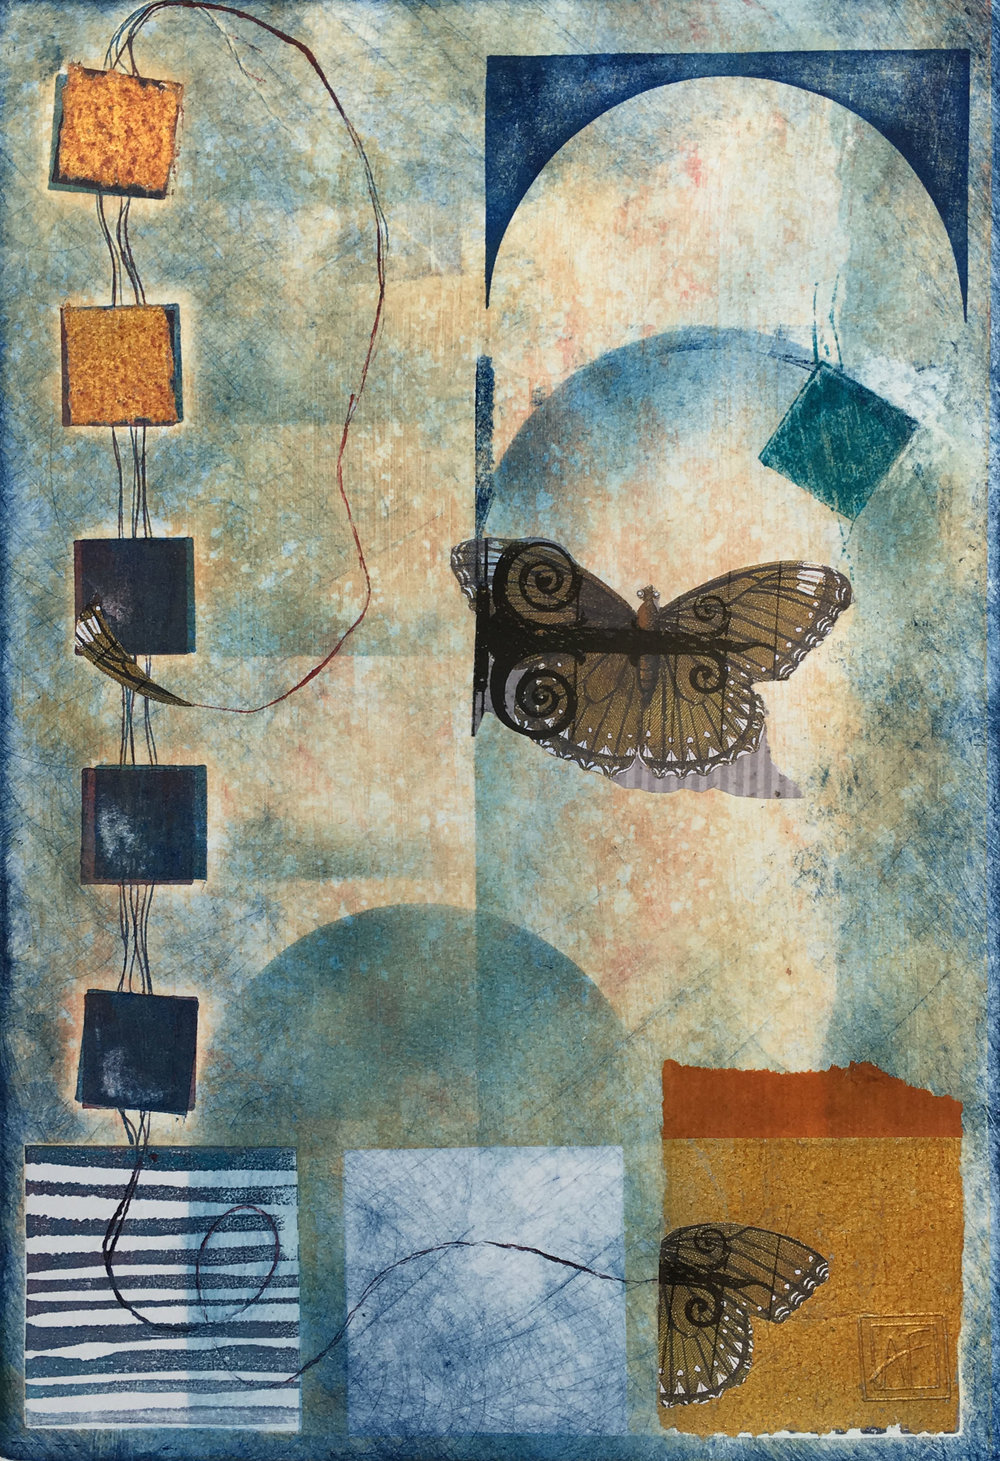 <p><strong>ANN FORBUSH</strong>mixed media<a href=/ann-forbush>More →</a></p>